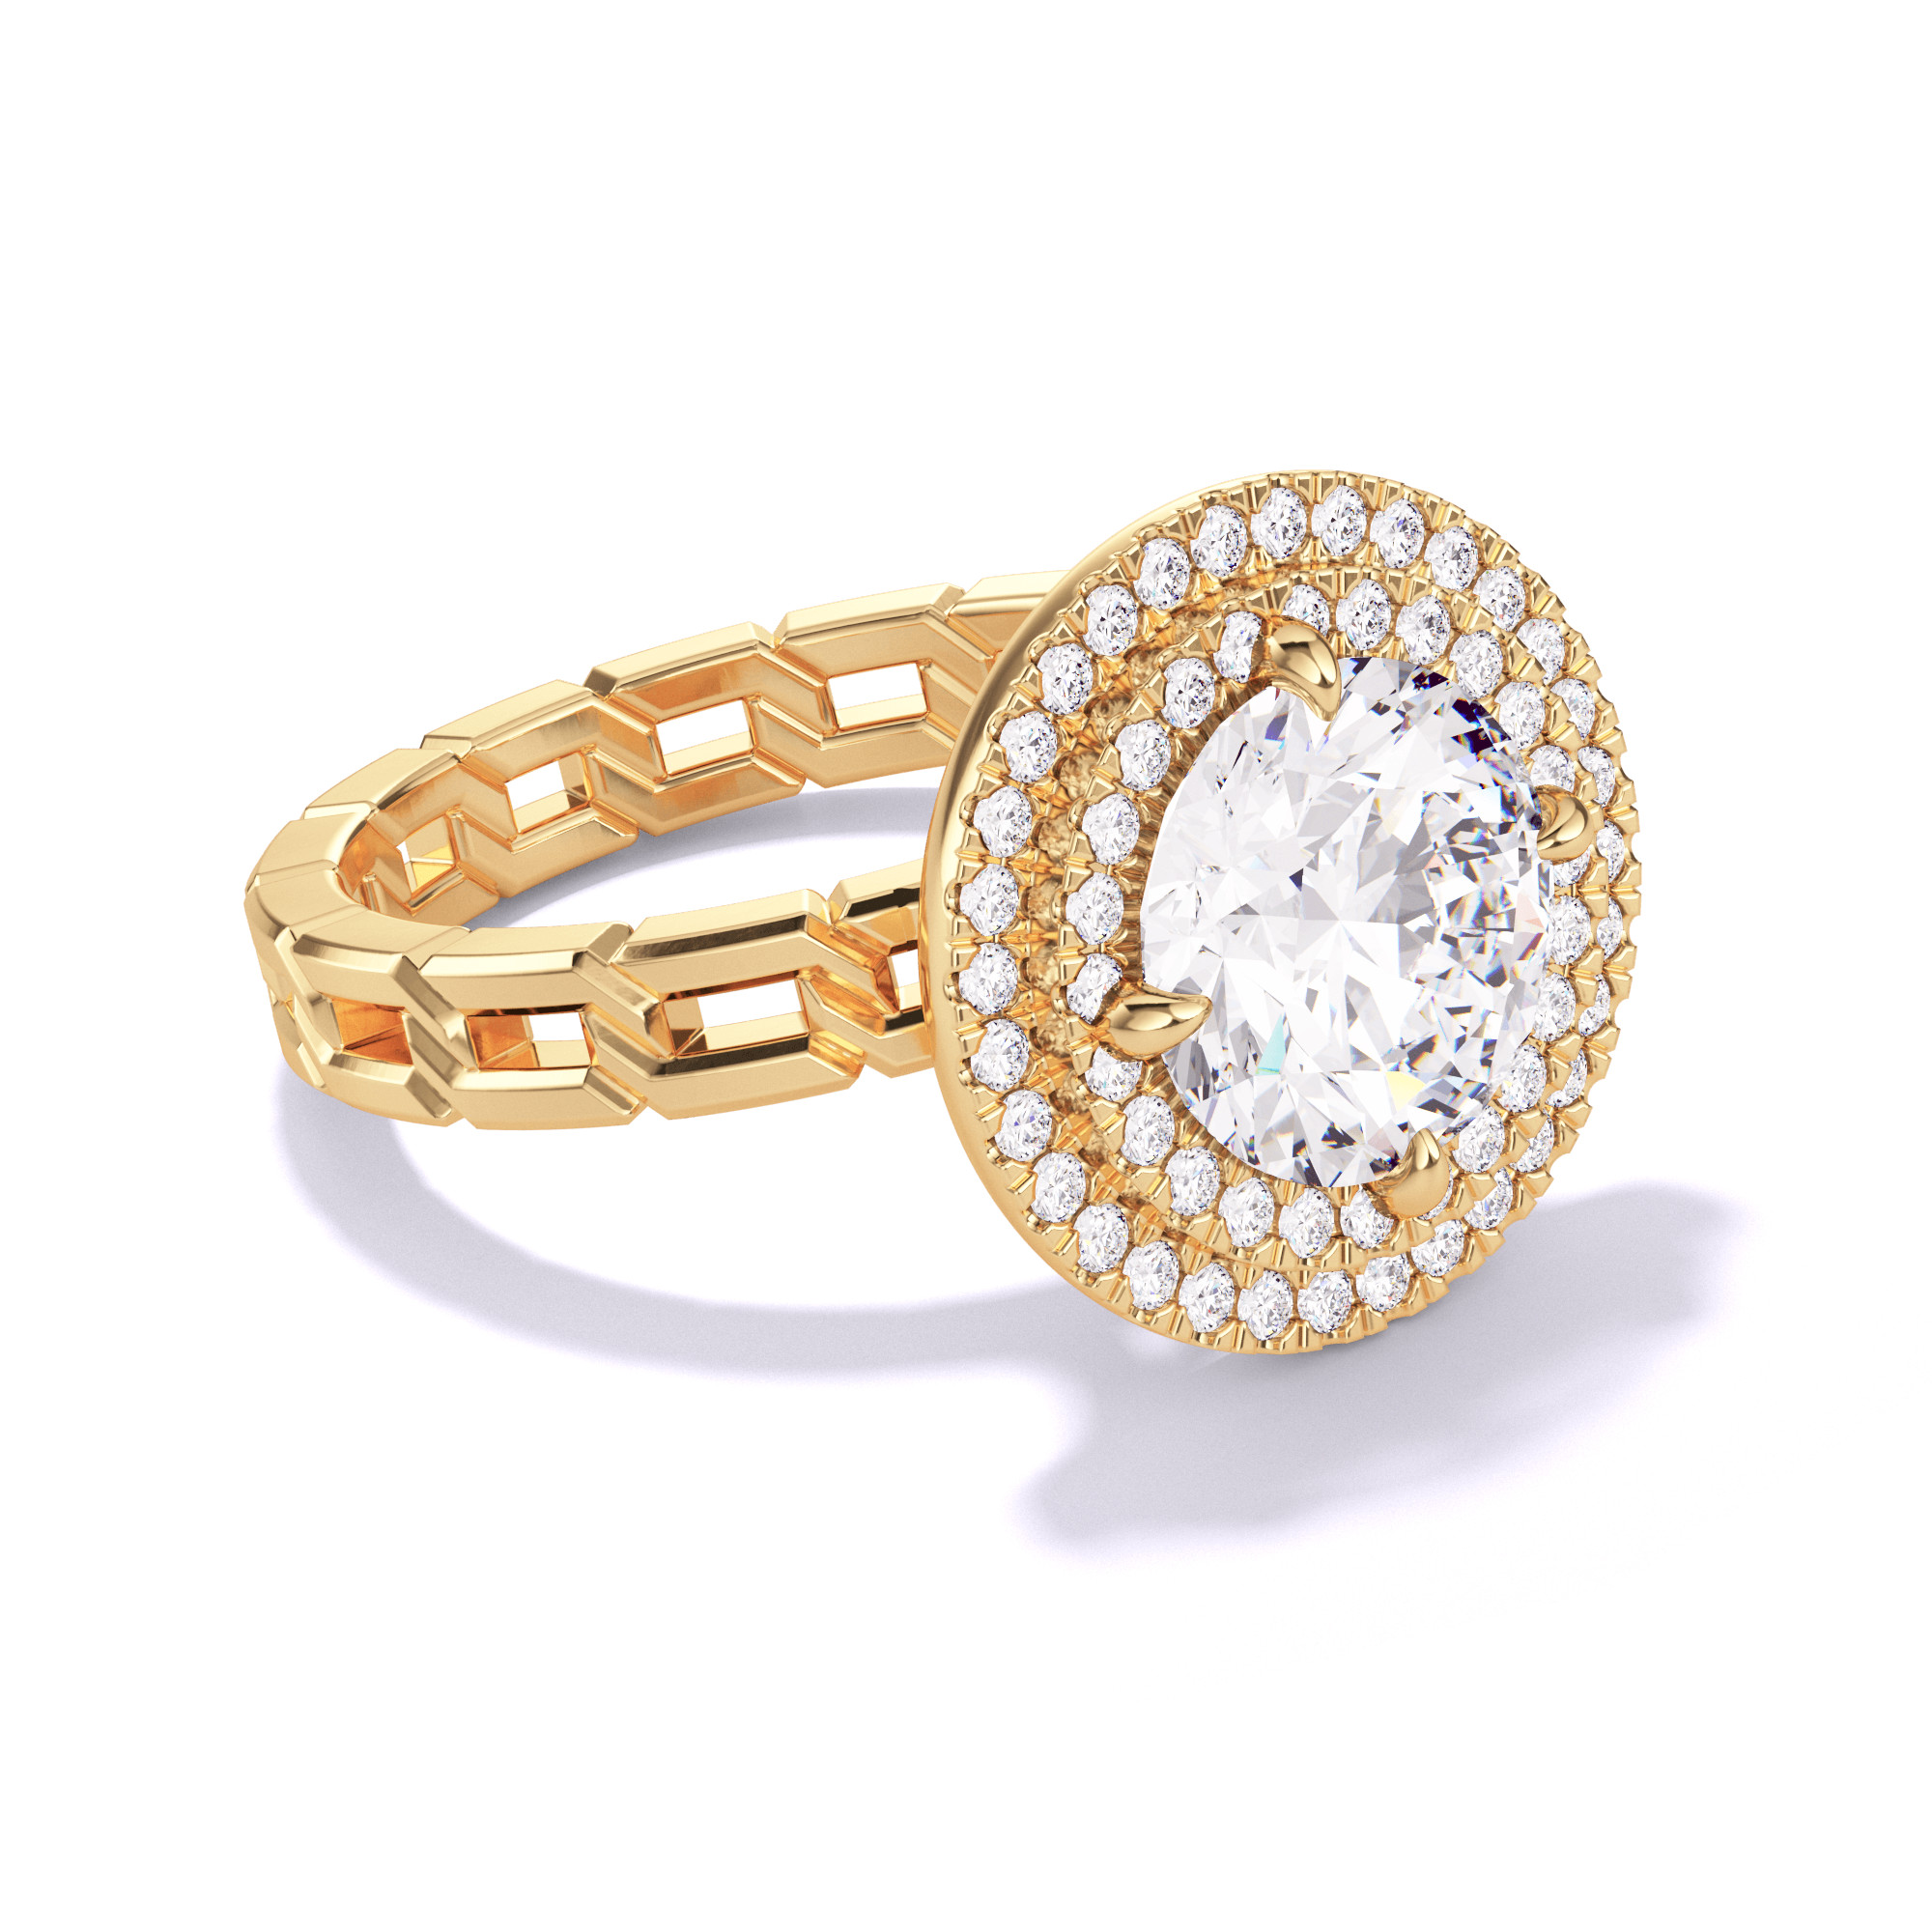 ROUND CUT, DOUBLE HALO SETTING, 16 LINKS, 18K YELLOW GOLD